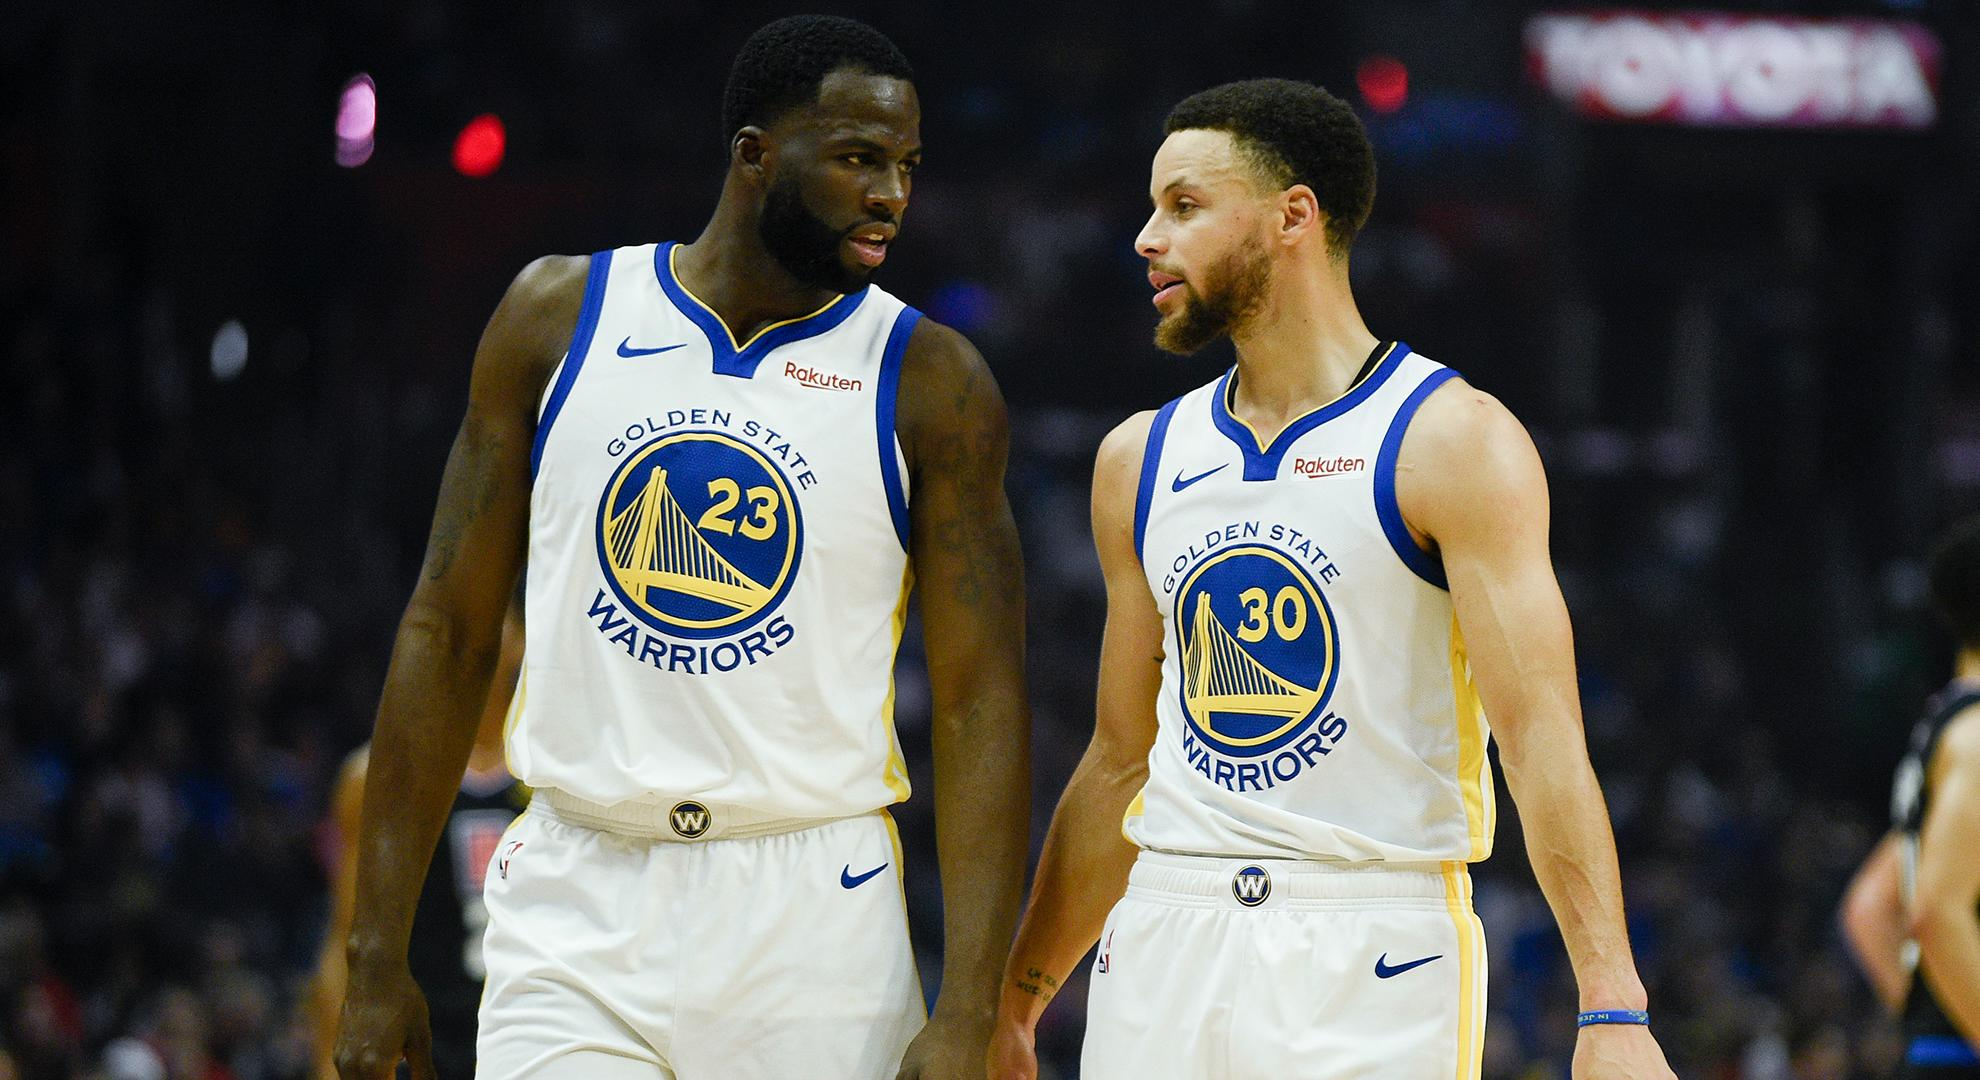 Assessing Warriors' roster, expectations heading into rebuild season